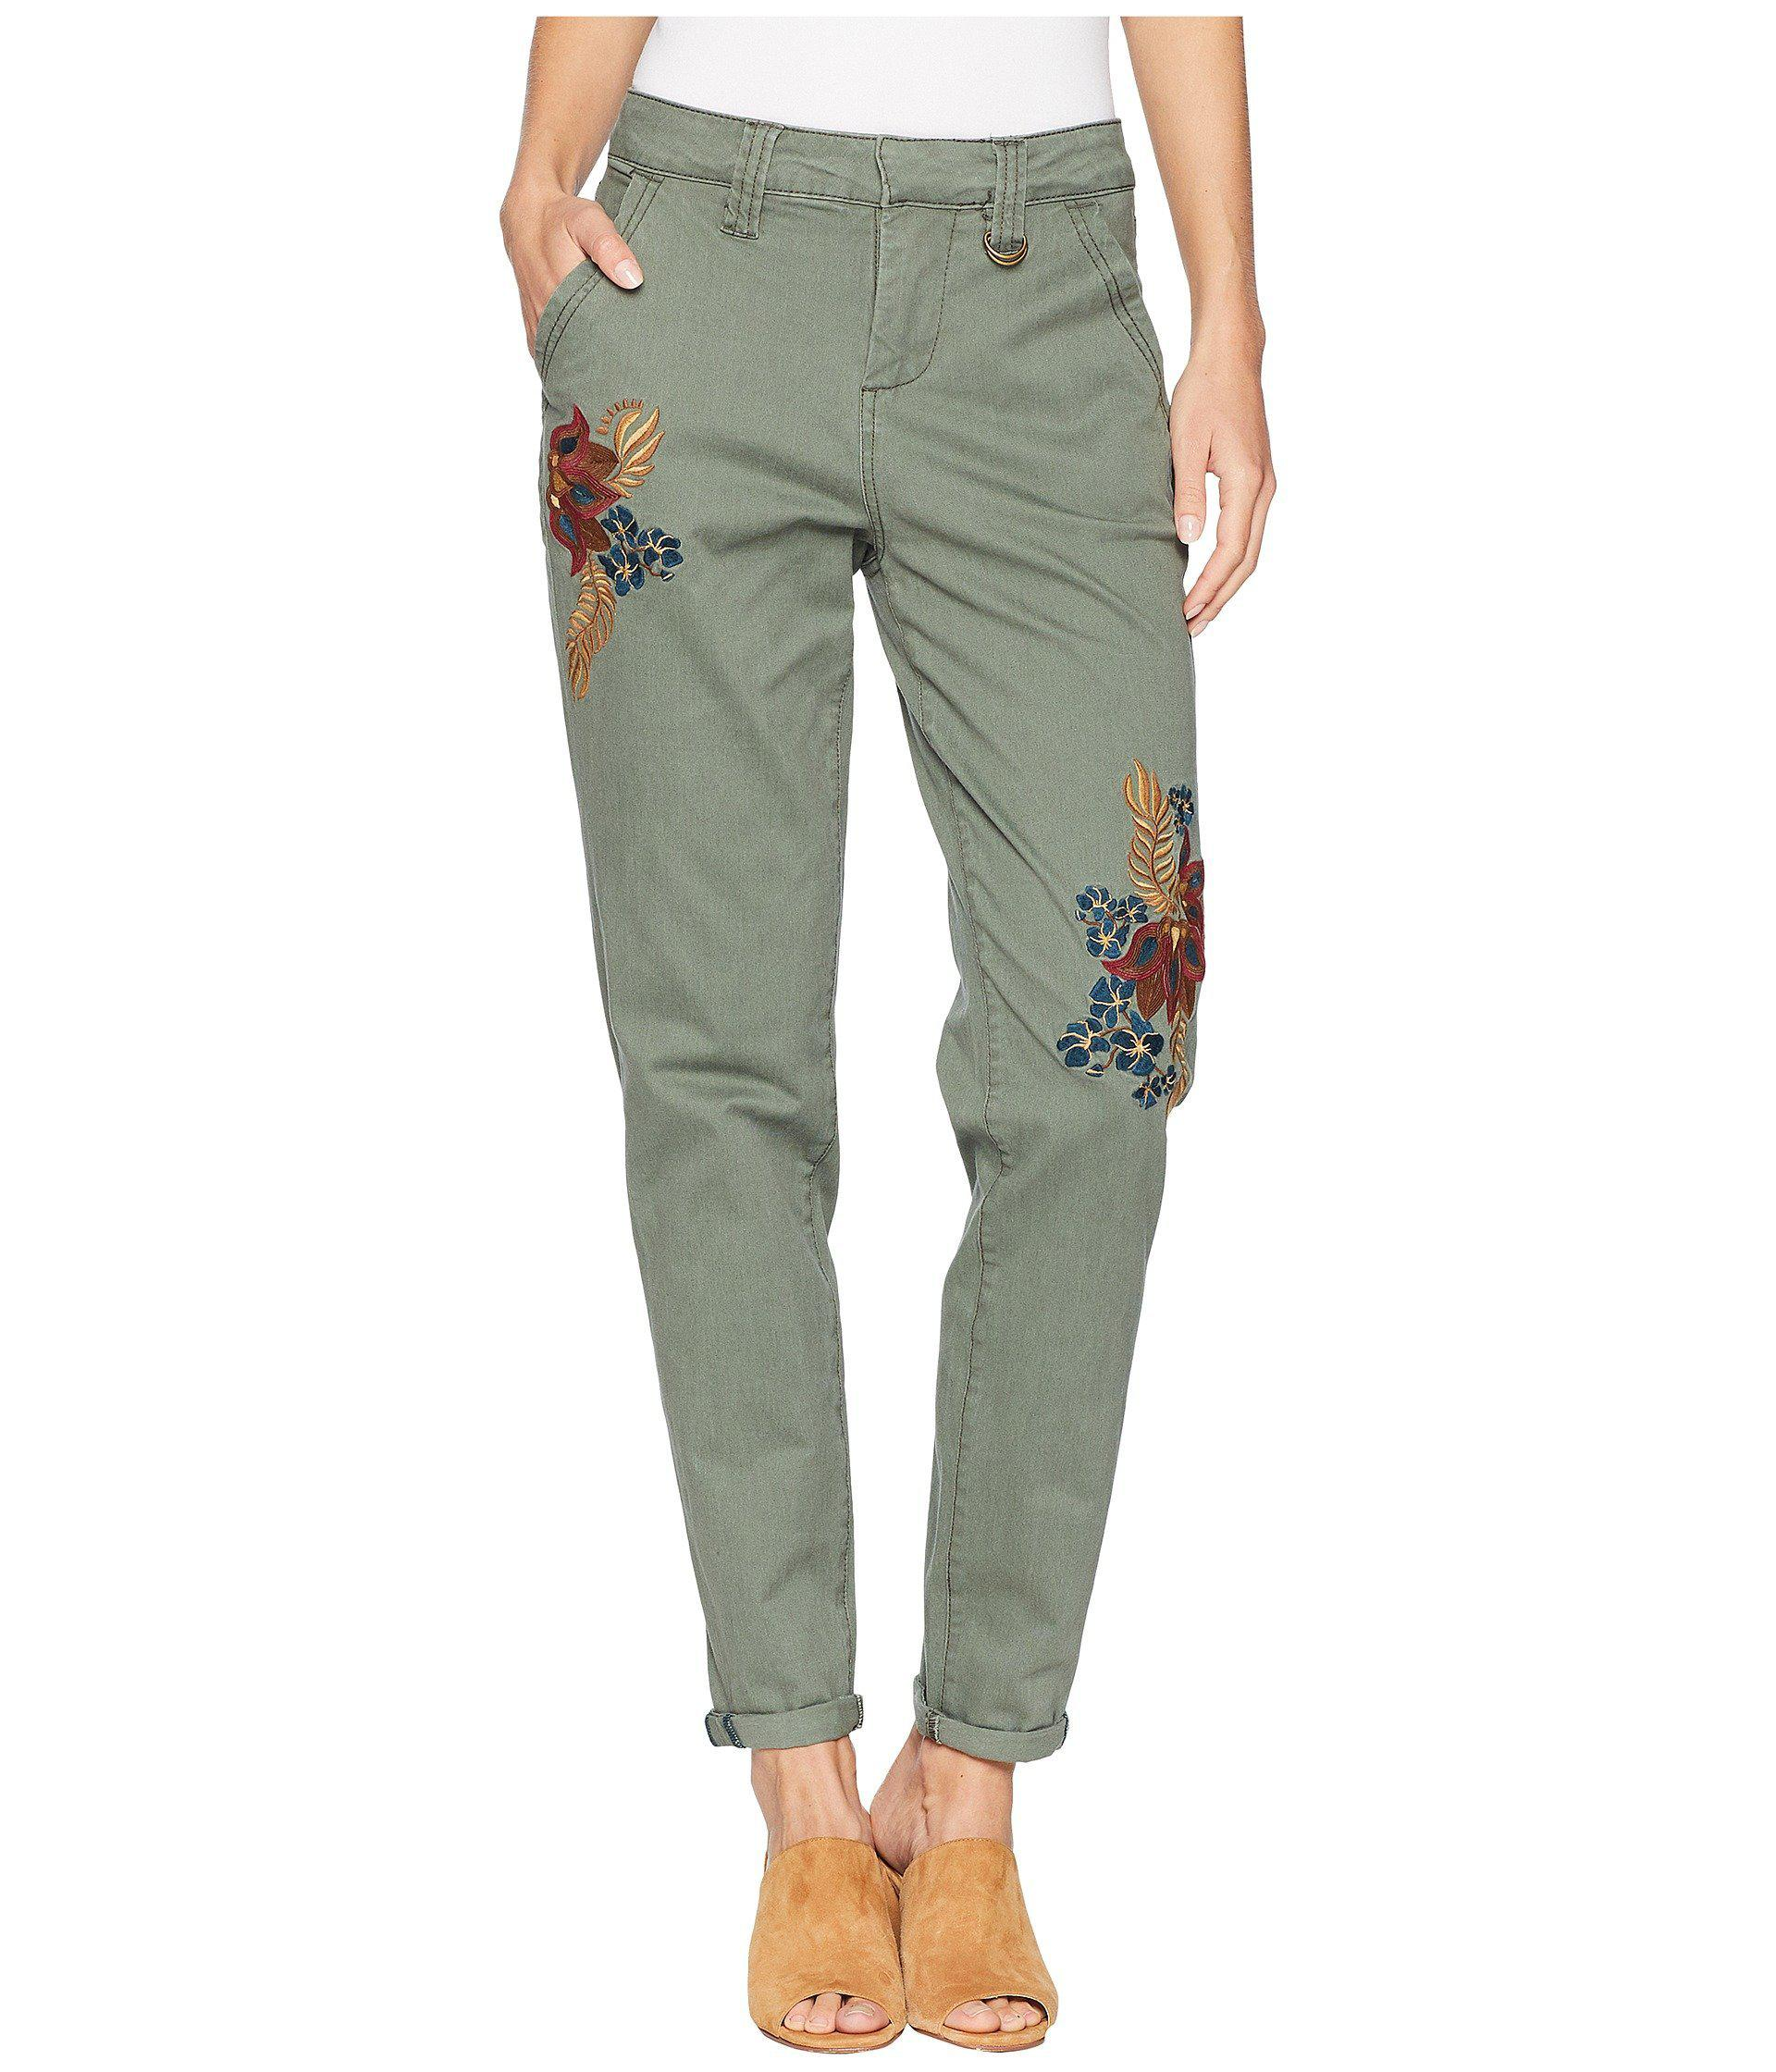 d6af8fc4461 Lyst - Jag Jeans Dana Chino Pants W  Embroidery in Green